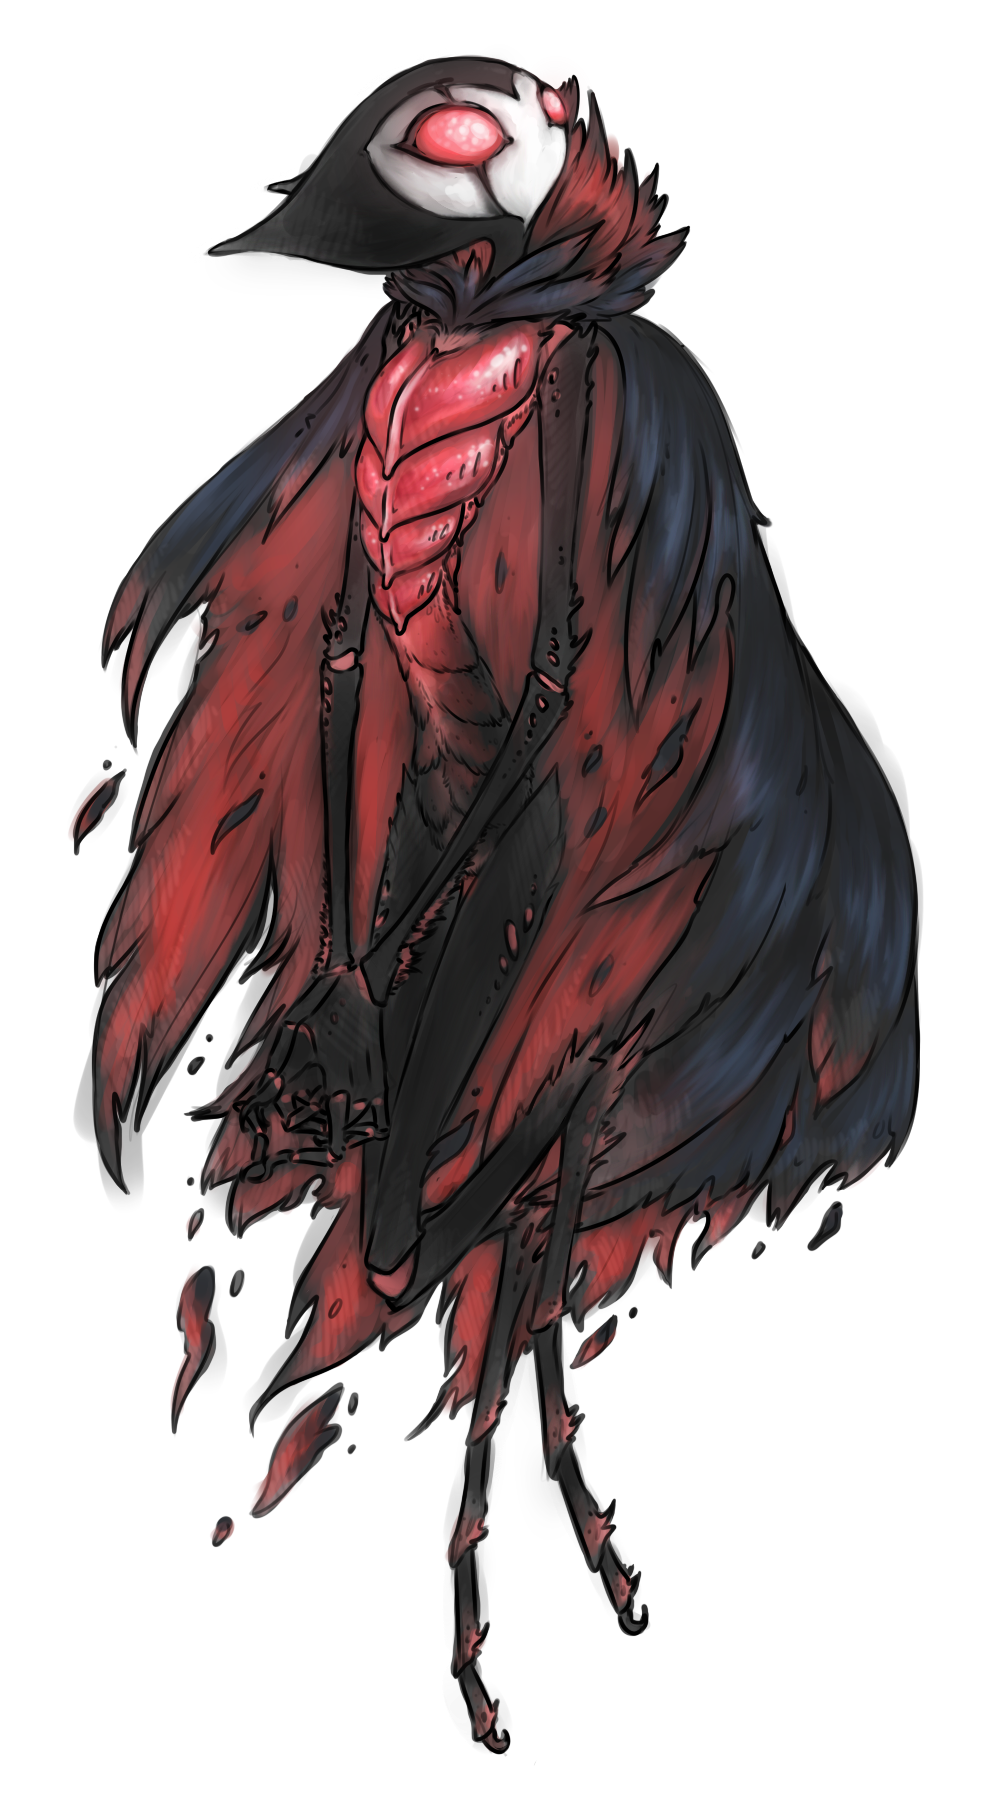 Hollow Knight Troupe Master Grimm Grimm Knight Hollow Night